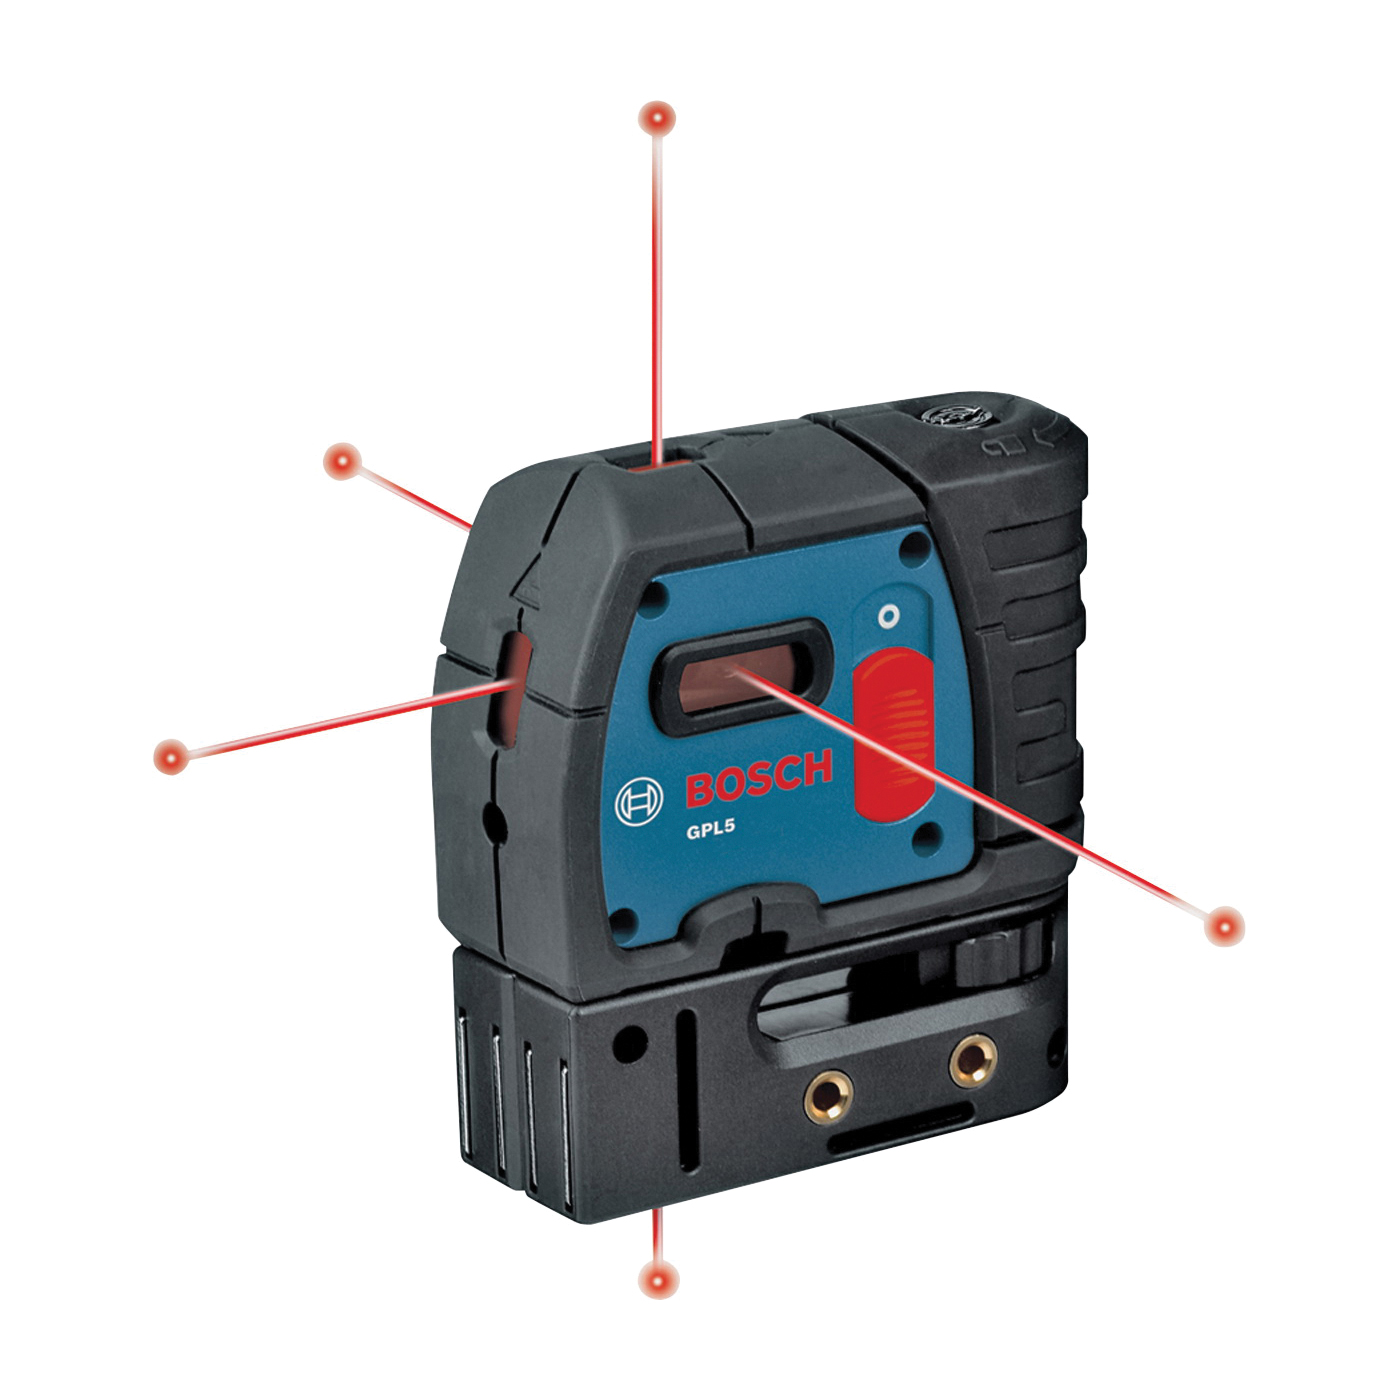 Picture of Bosch GPL 5 Laser Level, 100 ft, +/-1/4 in at 100 ft Accuracy, 5 -Beam